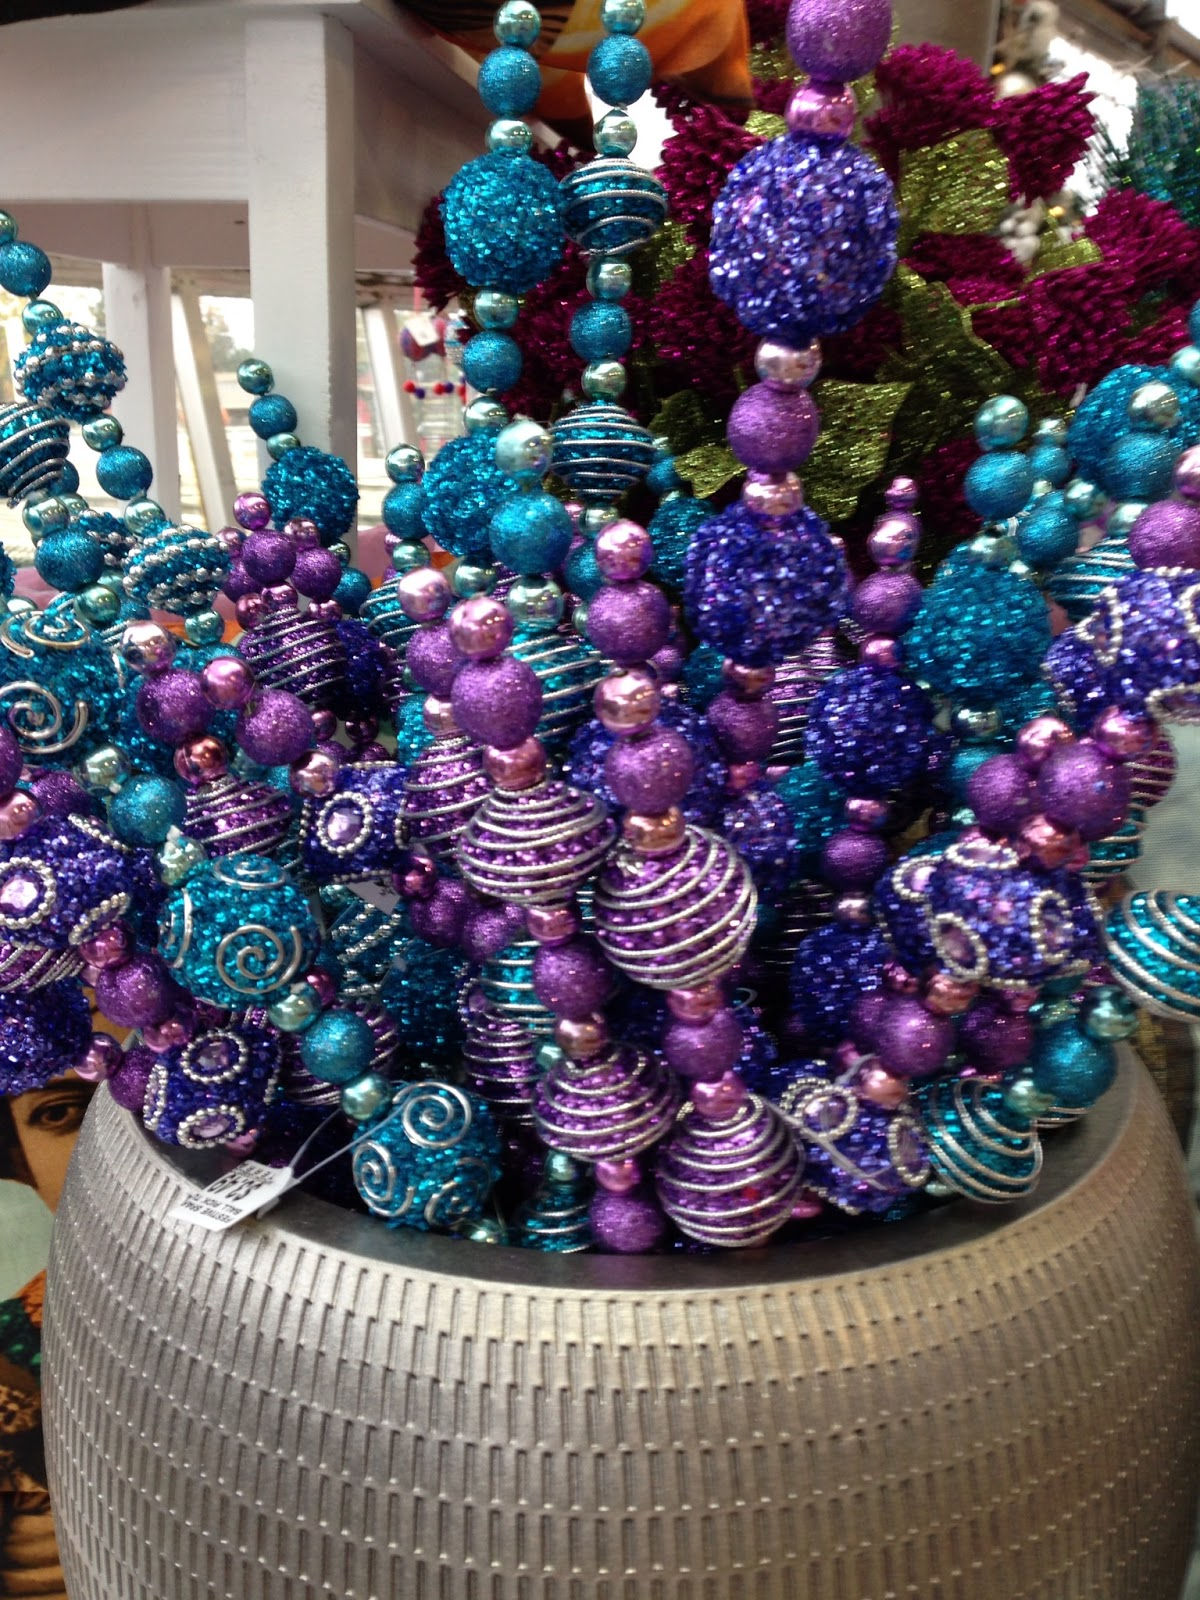 Girl It Up!: Christmas Ornaments on Sale: Time to Stock Up!